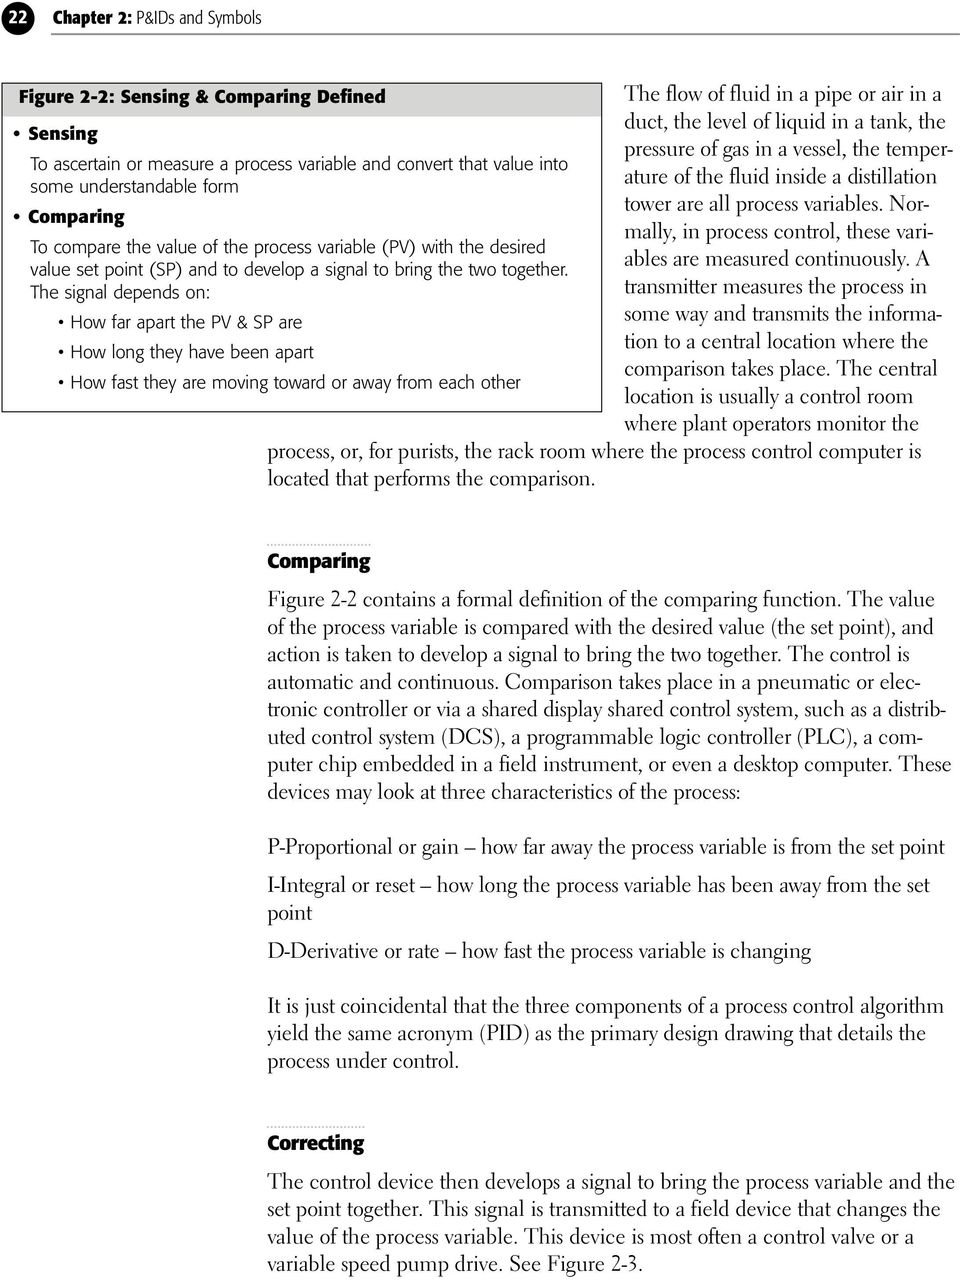 Chapter Two Pids And Symbols Pdf